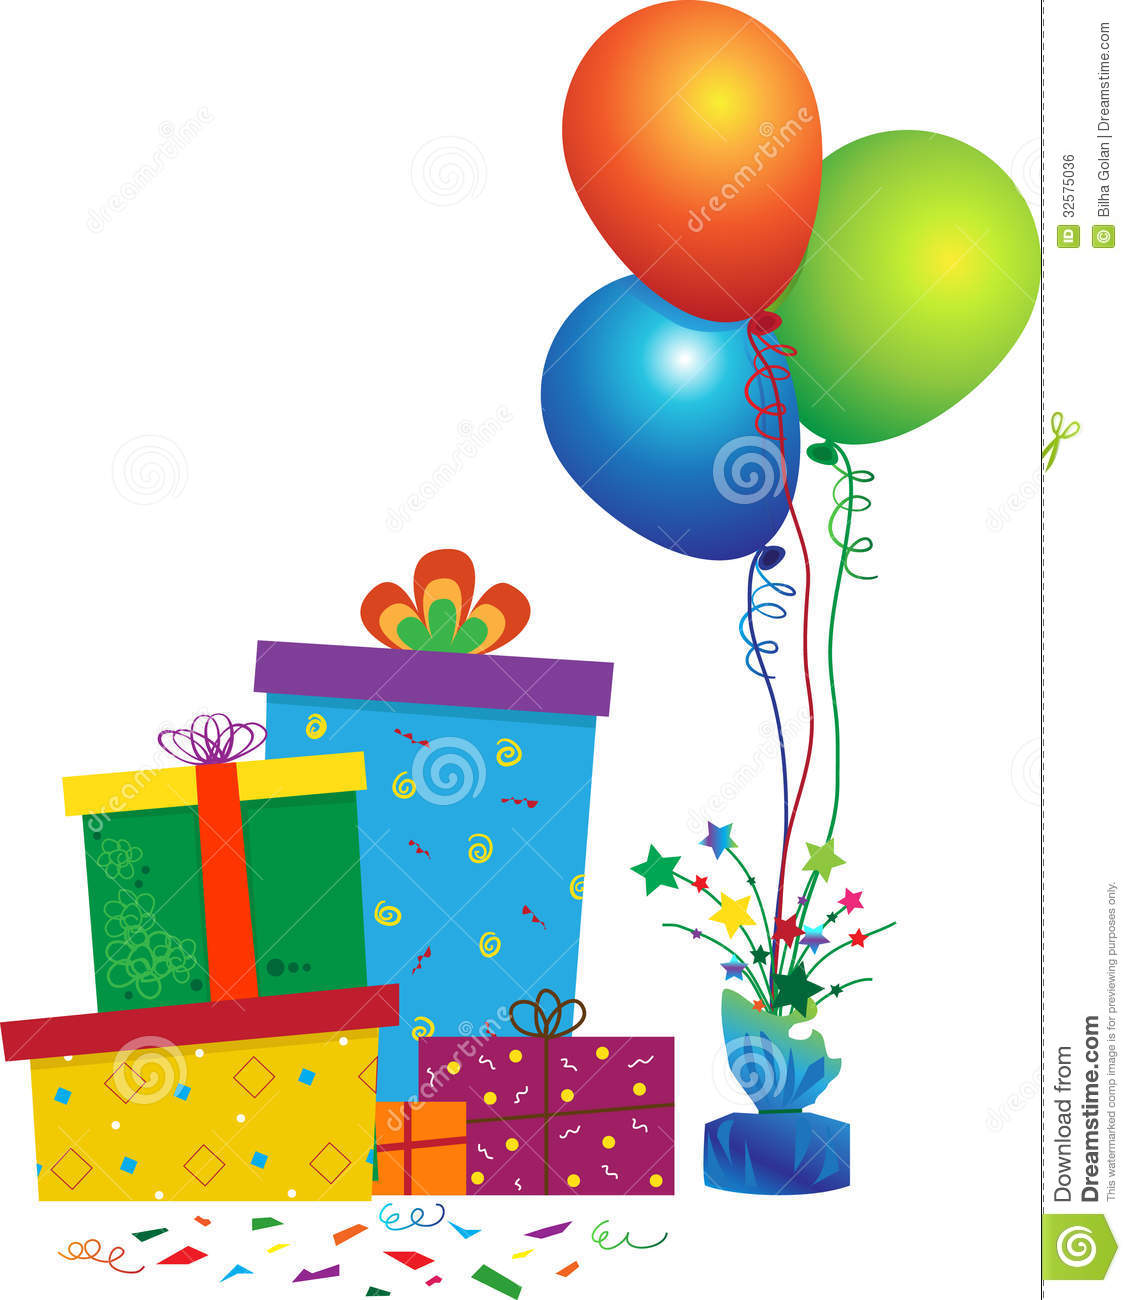 Vector illustration of gift boxes, balloons and confetti. Eps10.